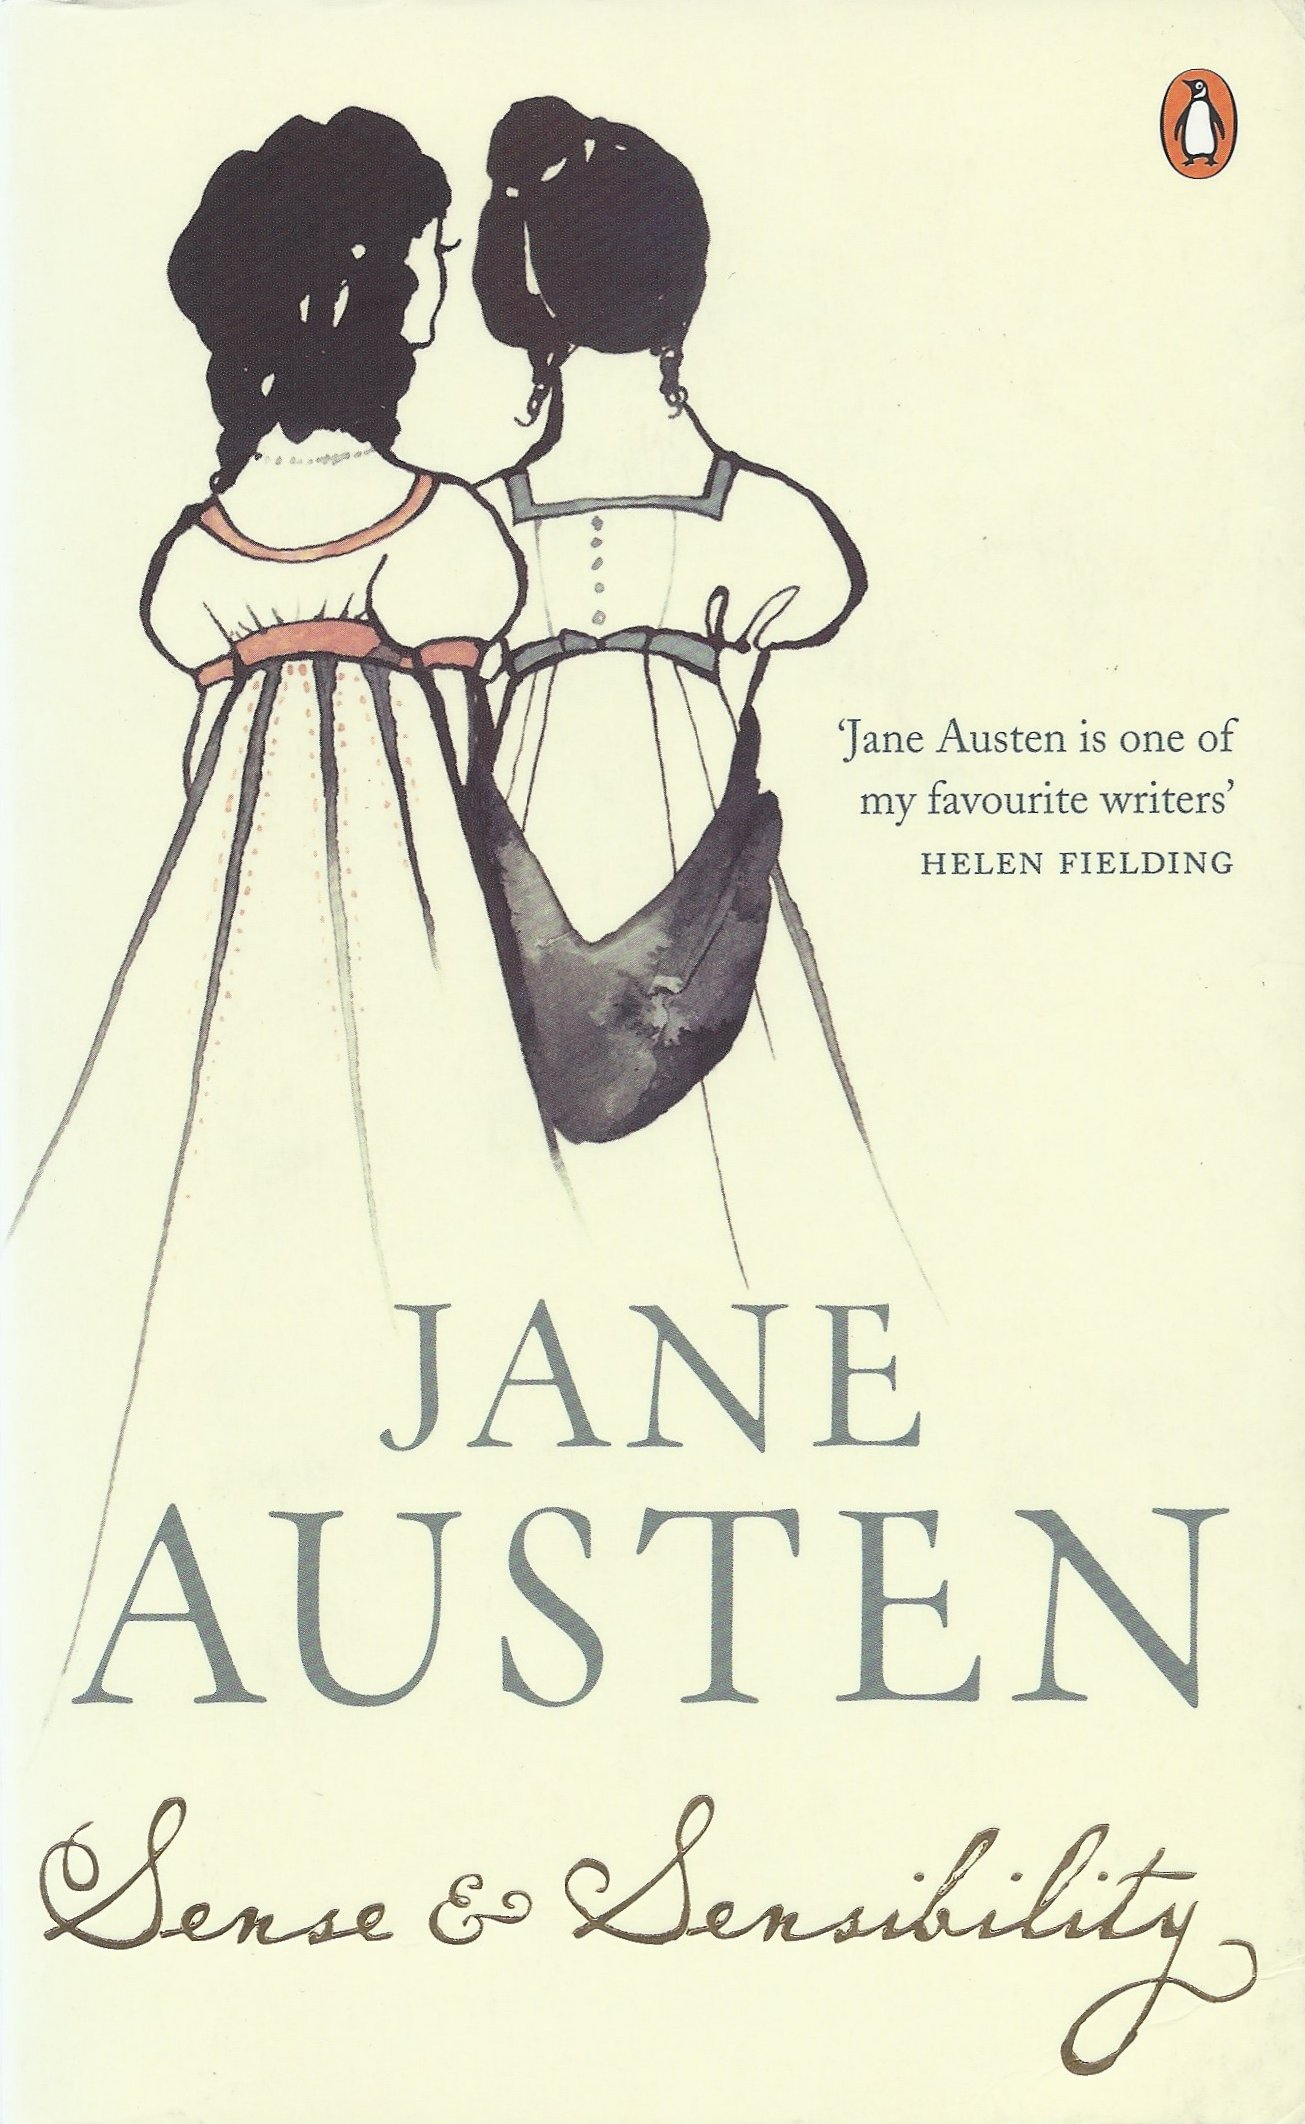 sense and sensibility jane austin The best of jane austen set emma, pride and prejudice, persuasion, and sense and sensibility treasury world masterpieces 1982 jane austen pride & prejudice emma persuasion + $499.